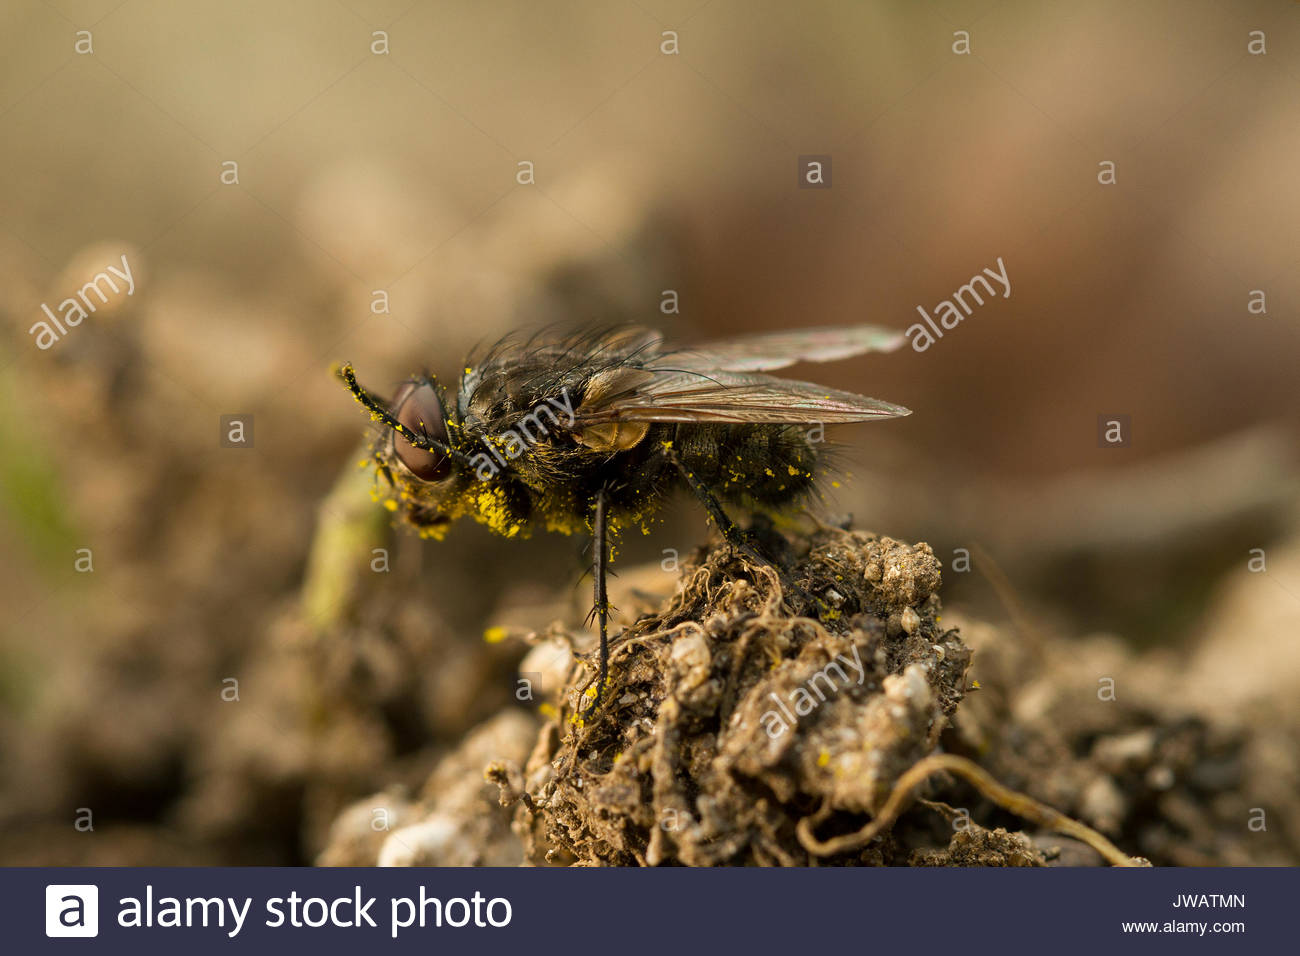 A fly cleans pollen from its body. - Stock Image